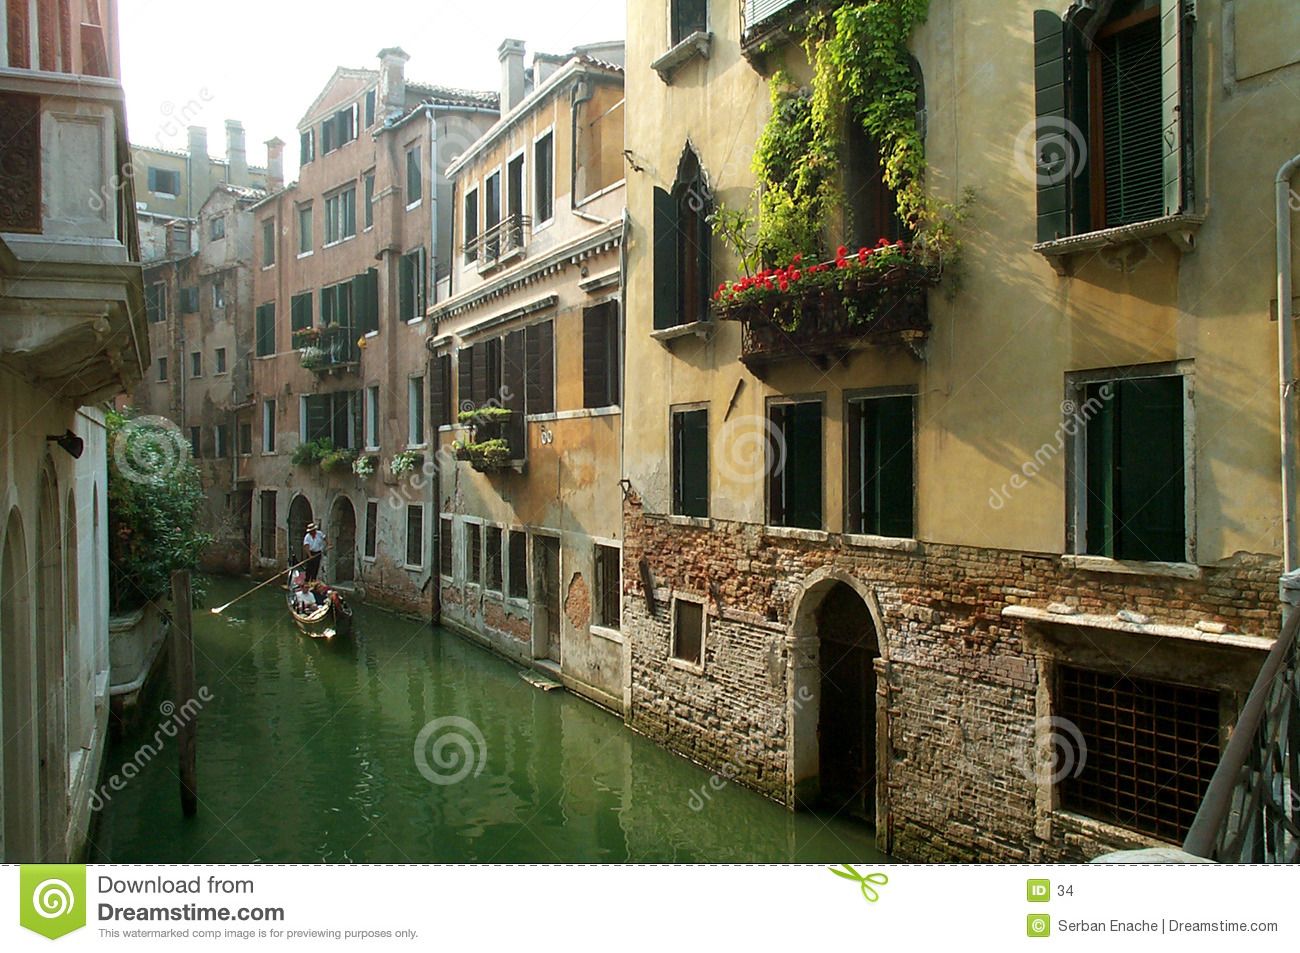 Chanell venice